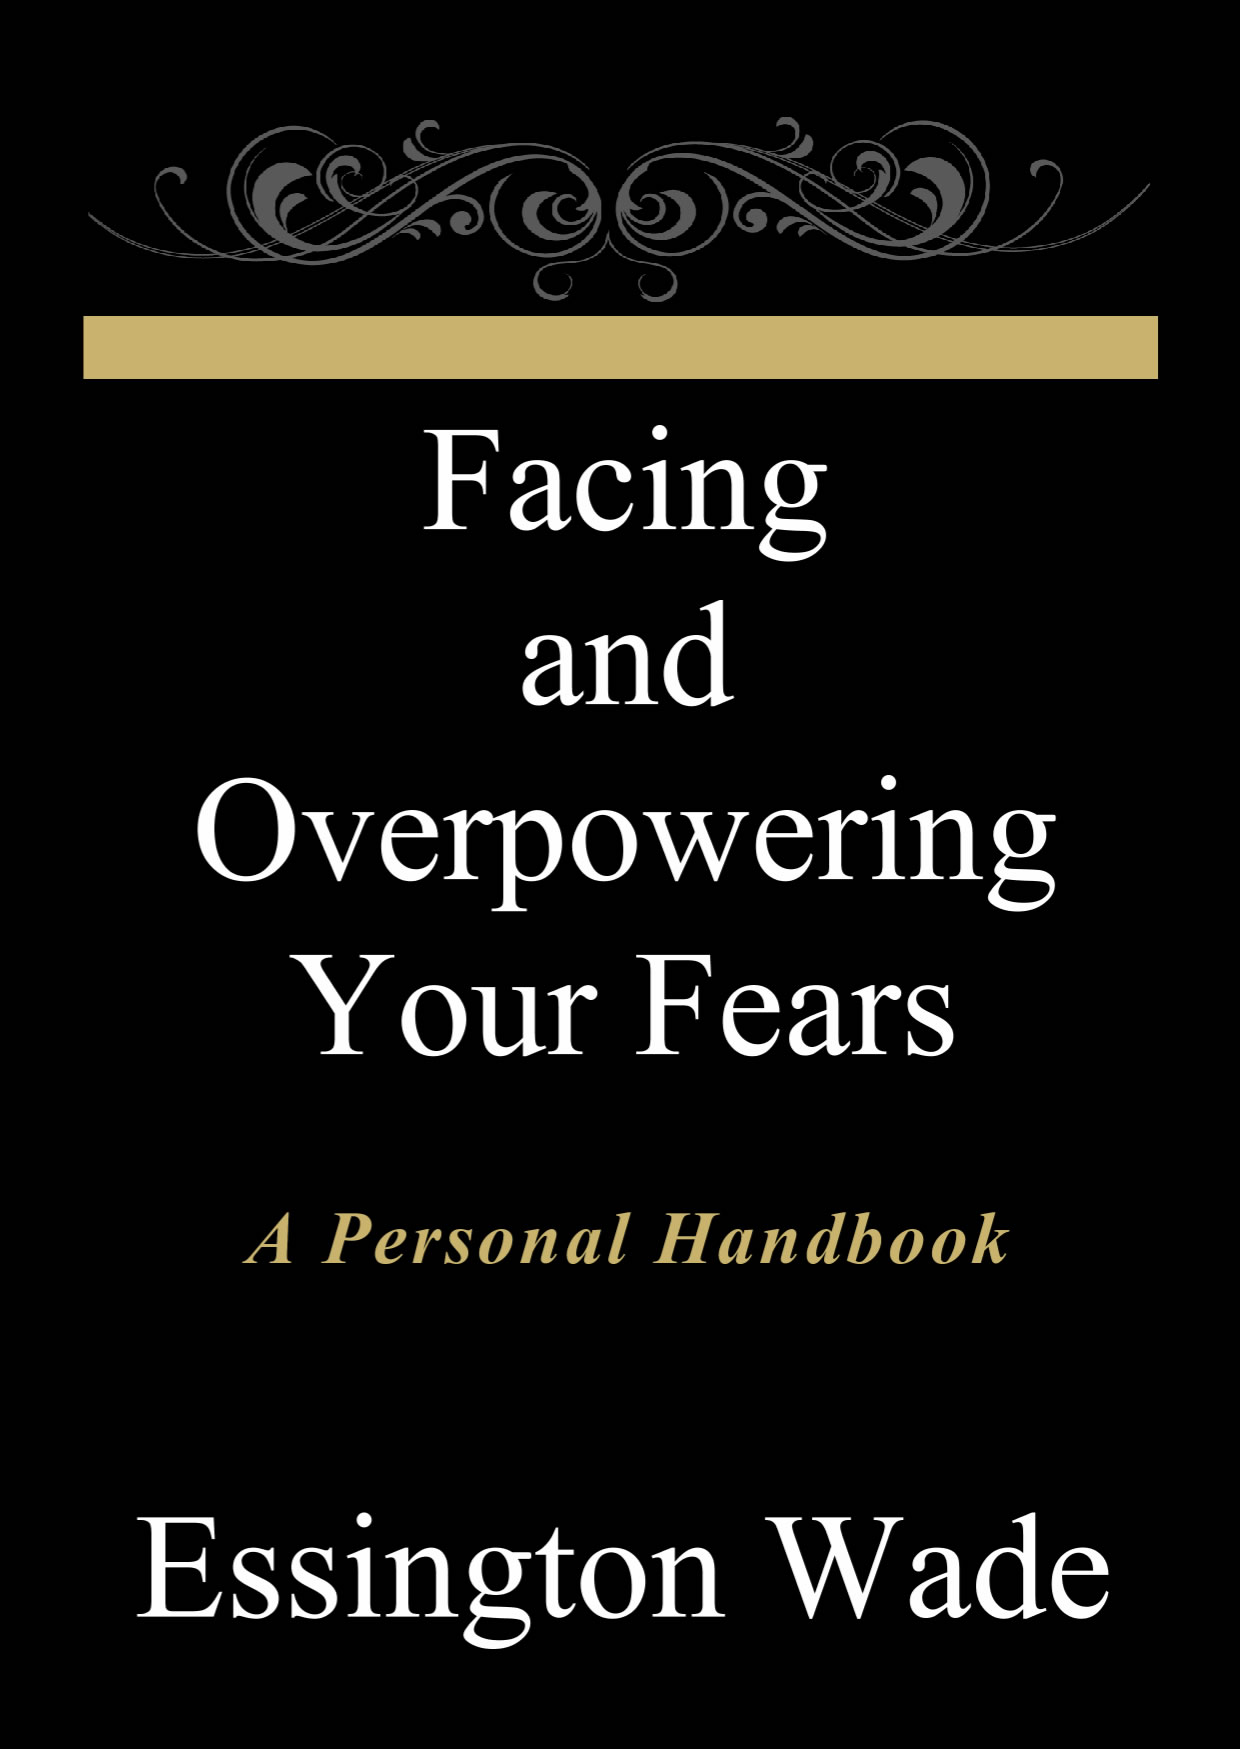 Facing and Overpowering Your Fears